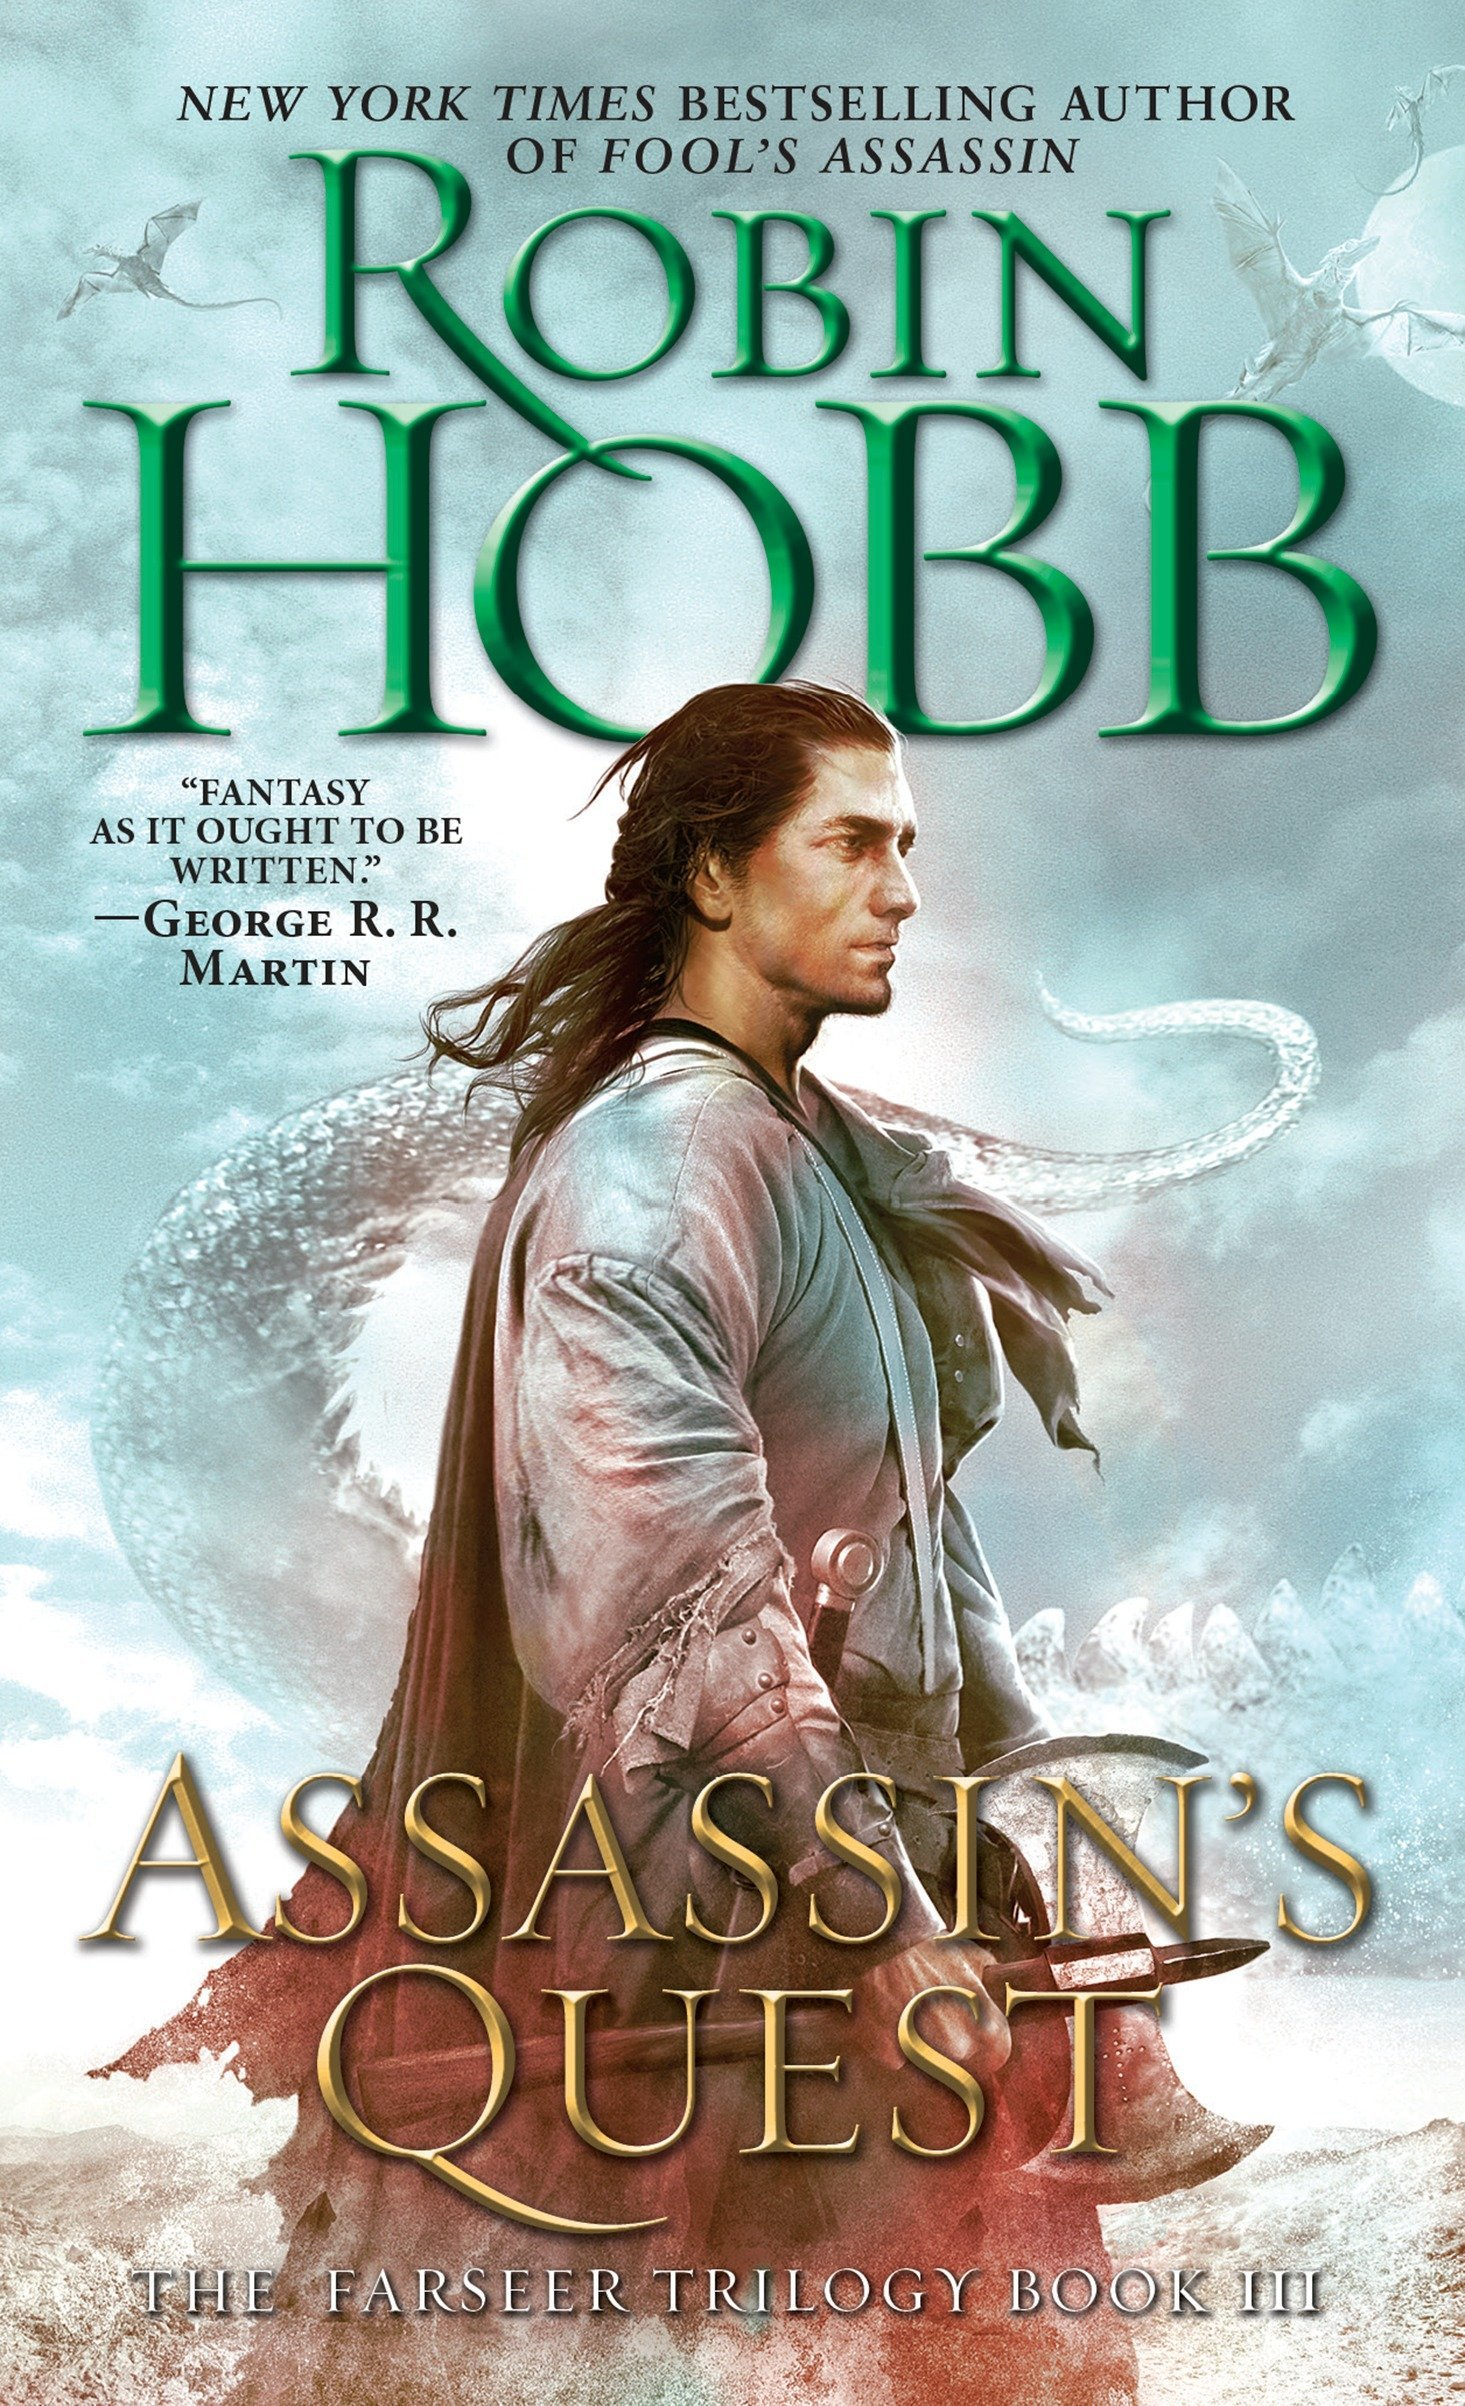 Image result for assassin's quest